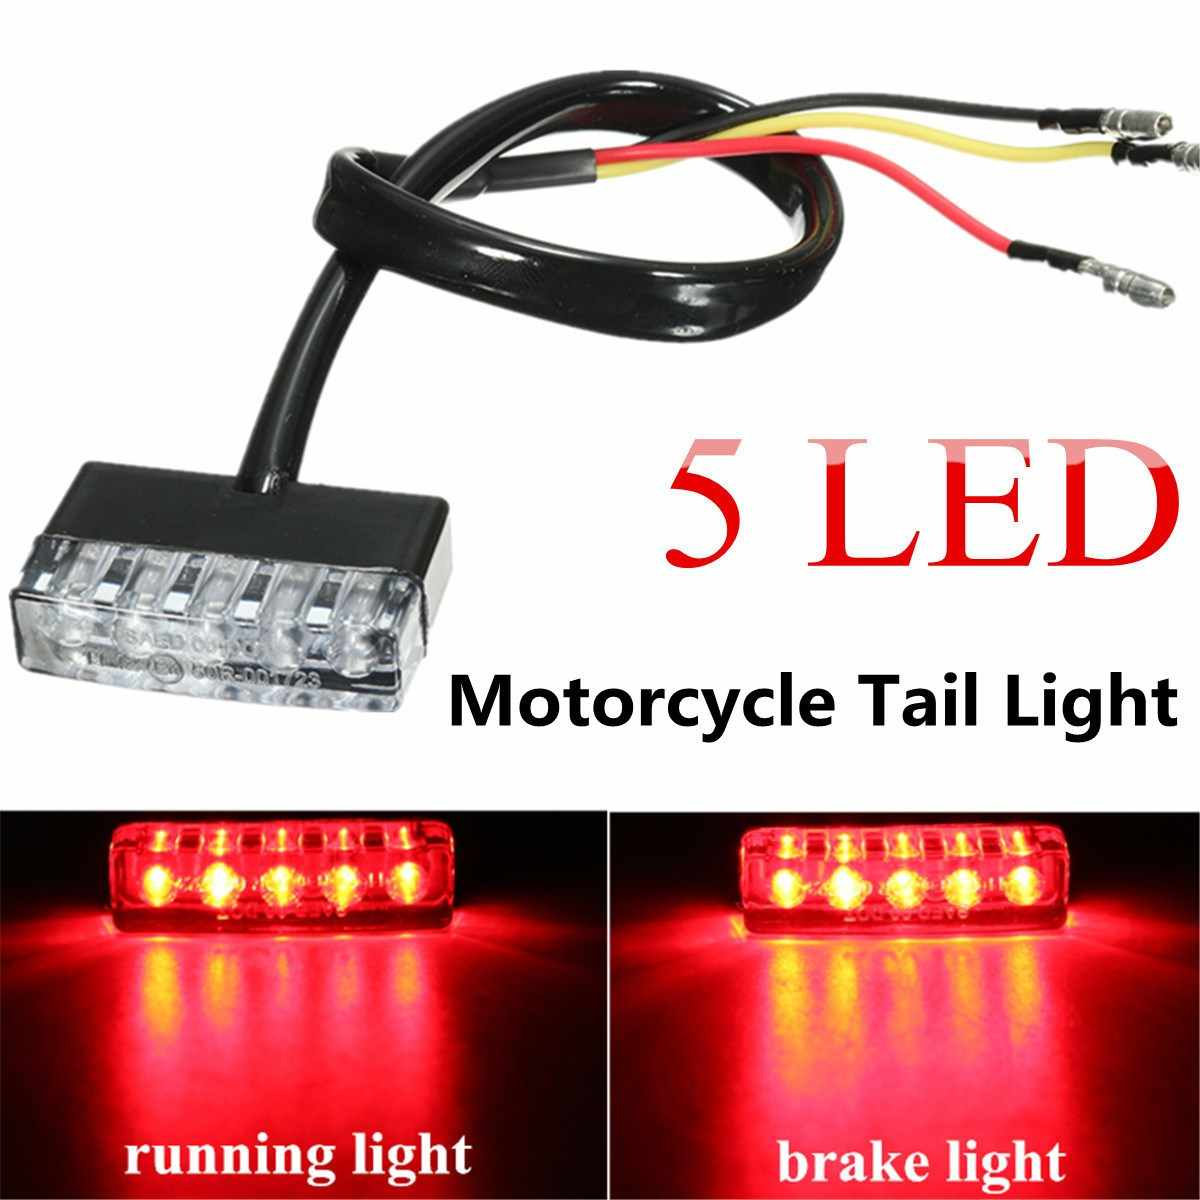 small resolution of 12v universal motorcycle atv bike mini 5 led rear lamp taillight running stop signal brake lights